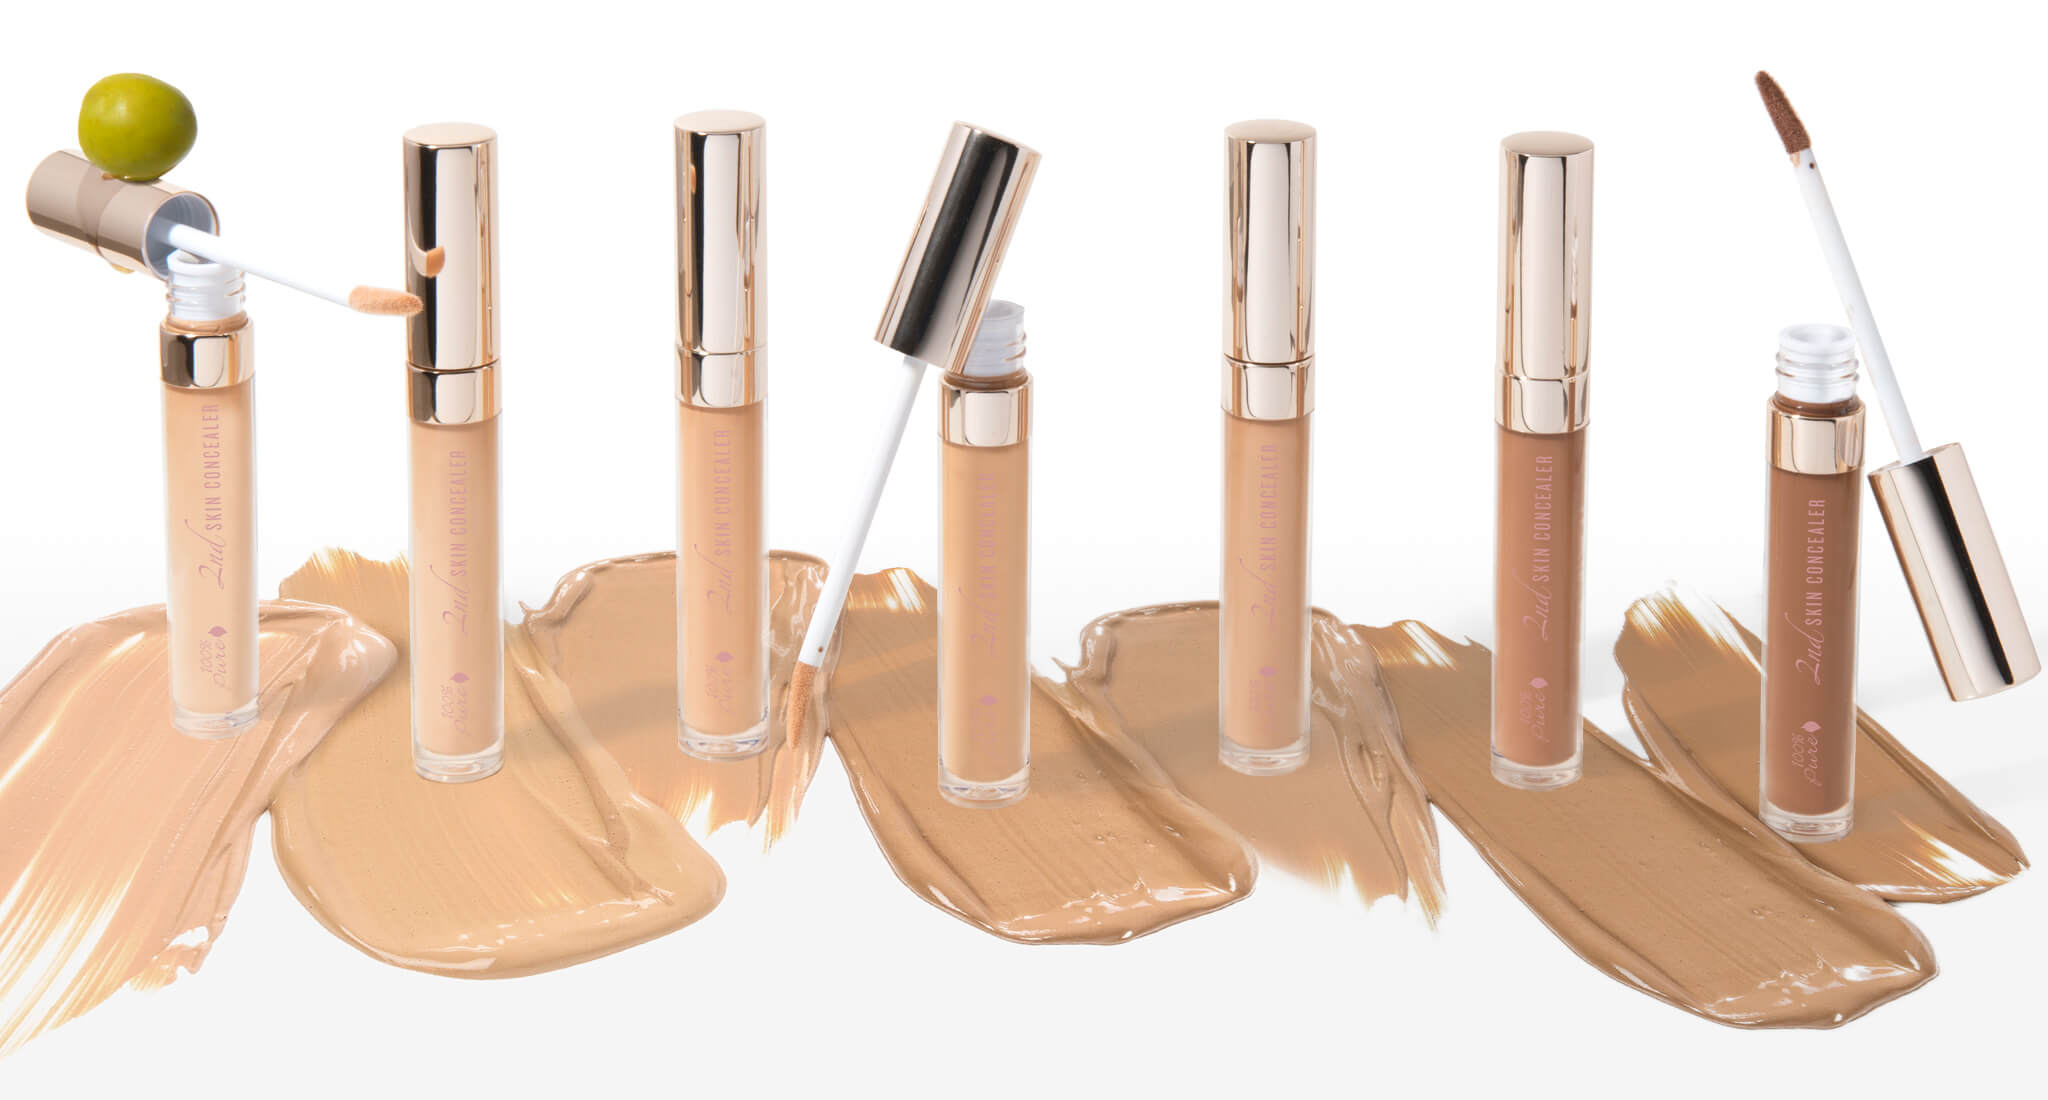 100% PURE 2nd Skin Concealer Lineup